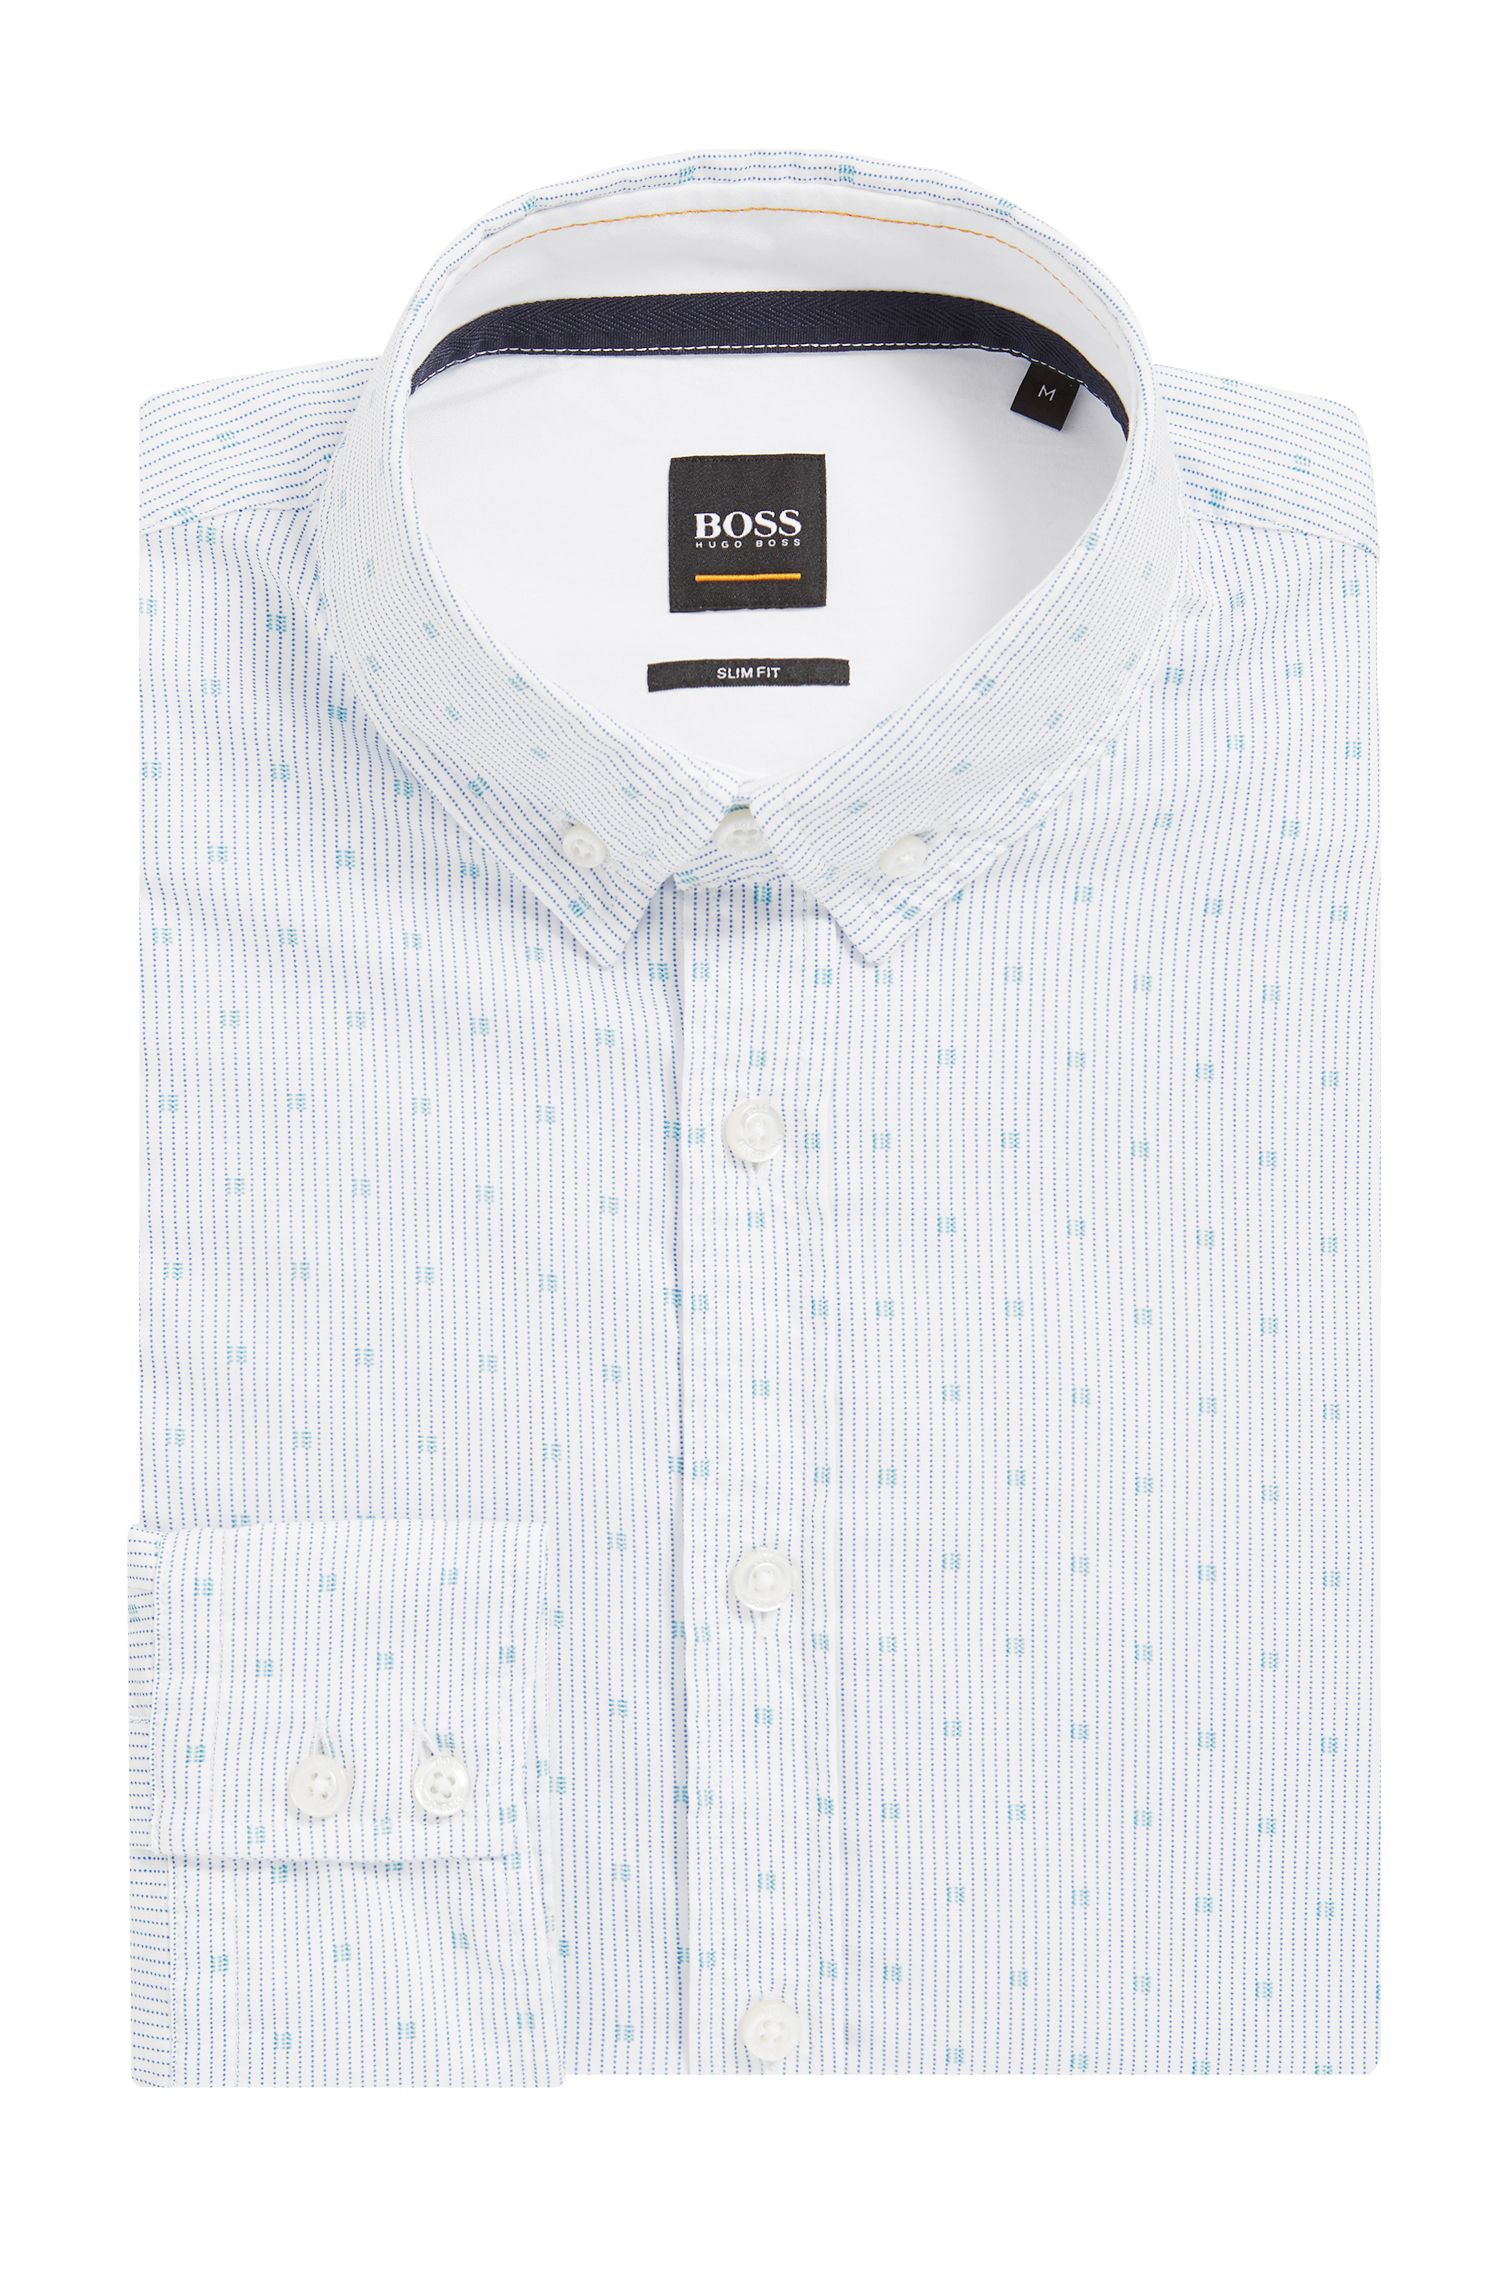 Micro Patterned Cotton Sport Shirt, Slim Fit | Epreppy